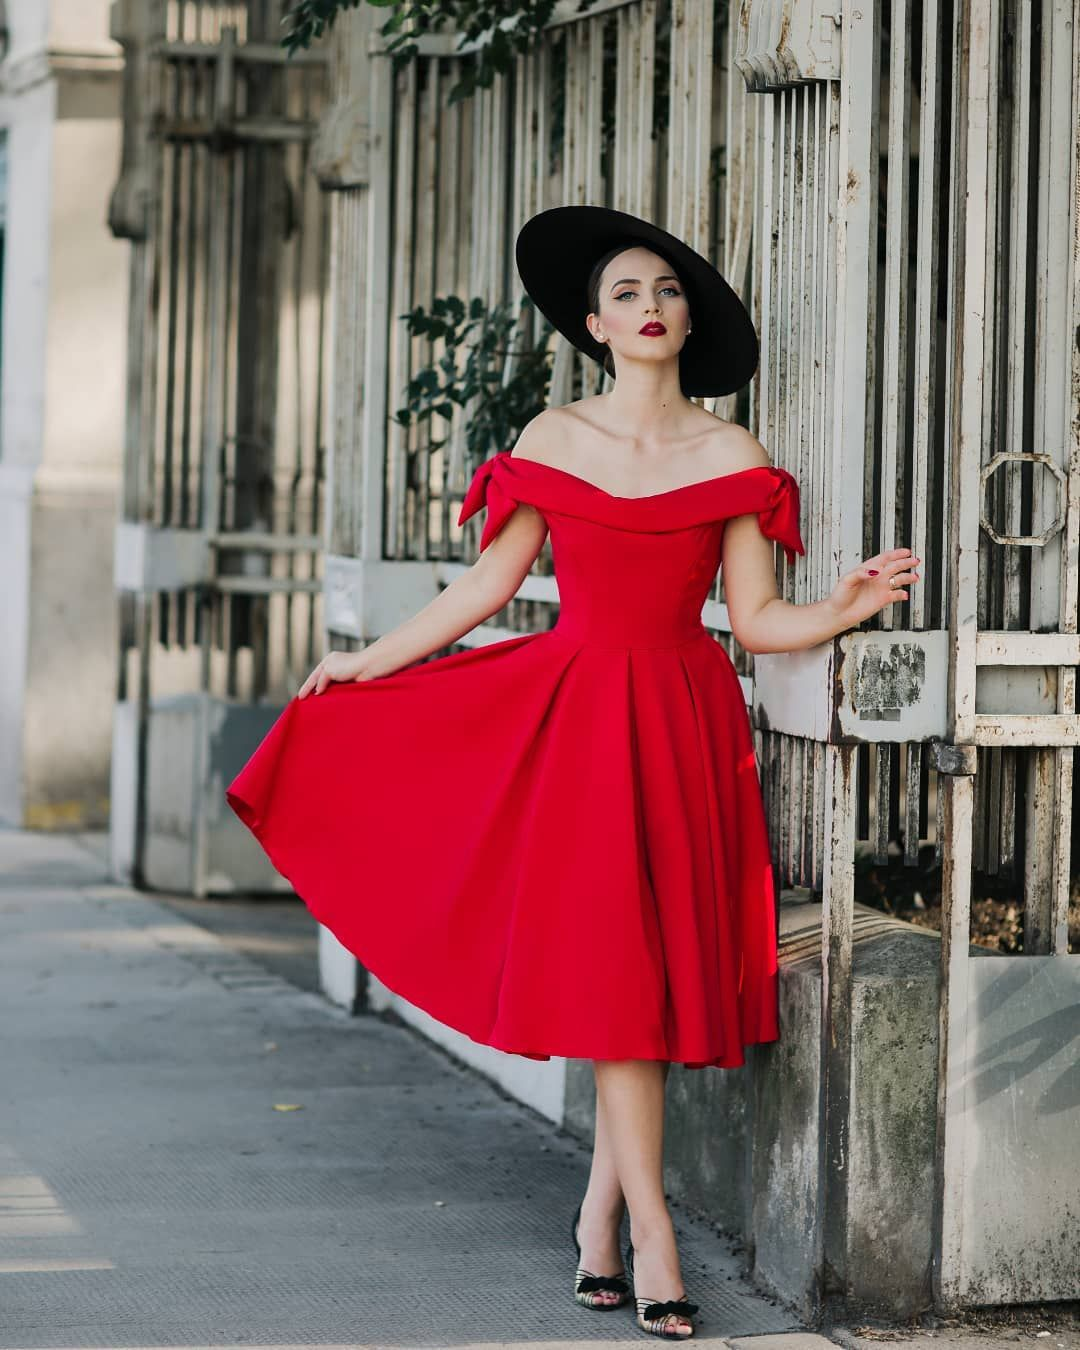 Tilly Off The Shoulder Bow Prom Dress The Pretty Dress Company Vintage Style Dresses Pretty Dresses Casual [ 1350 x 1080 Pixel ]